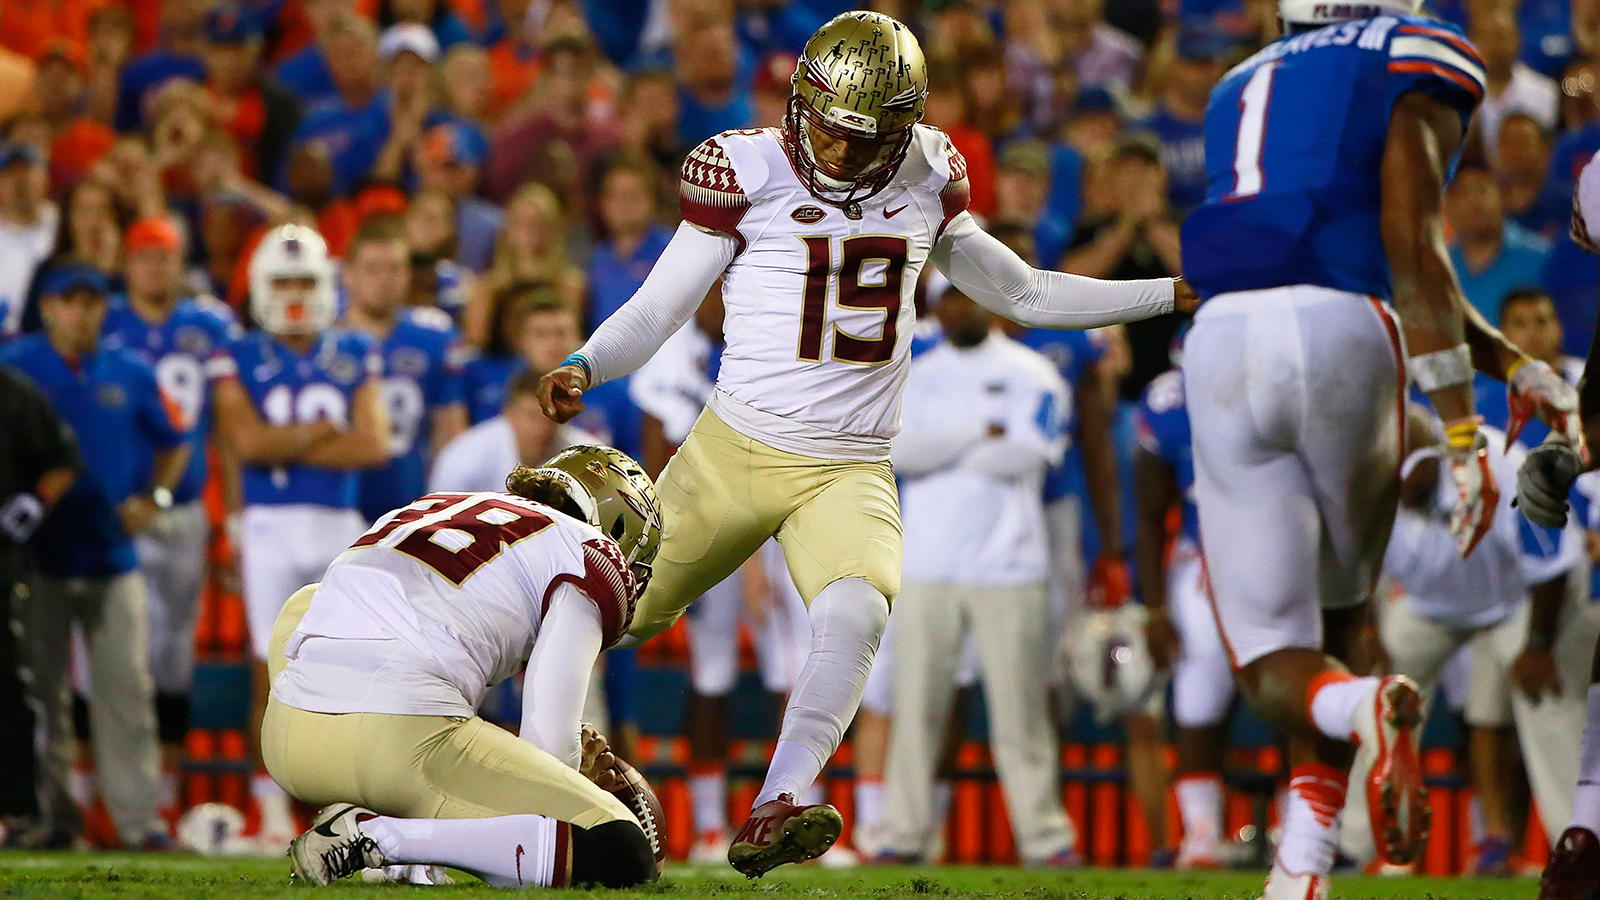 Longer PATs could make FSU's Roberto Aguayo hot commodity in NFL Draft